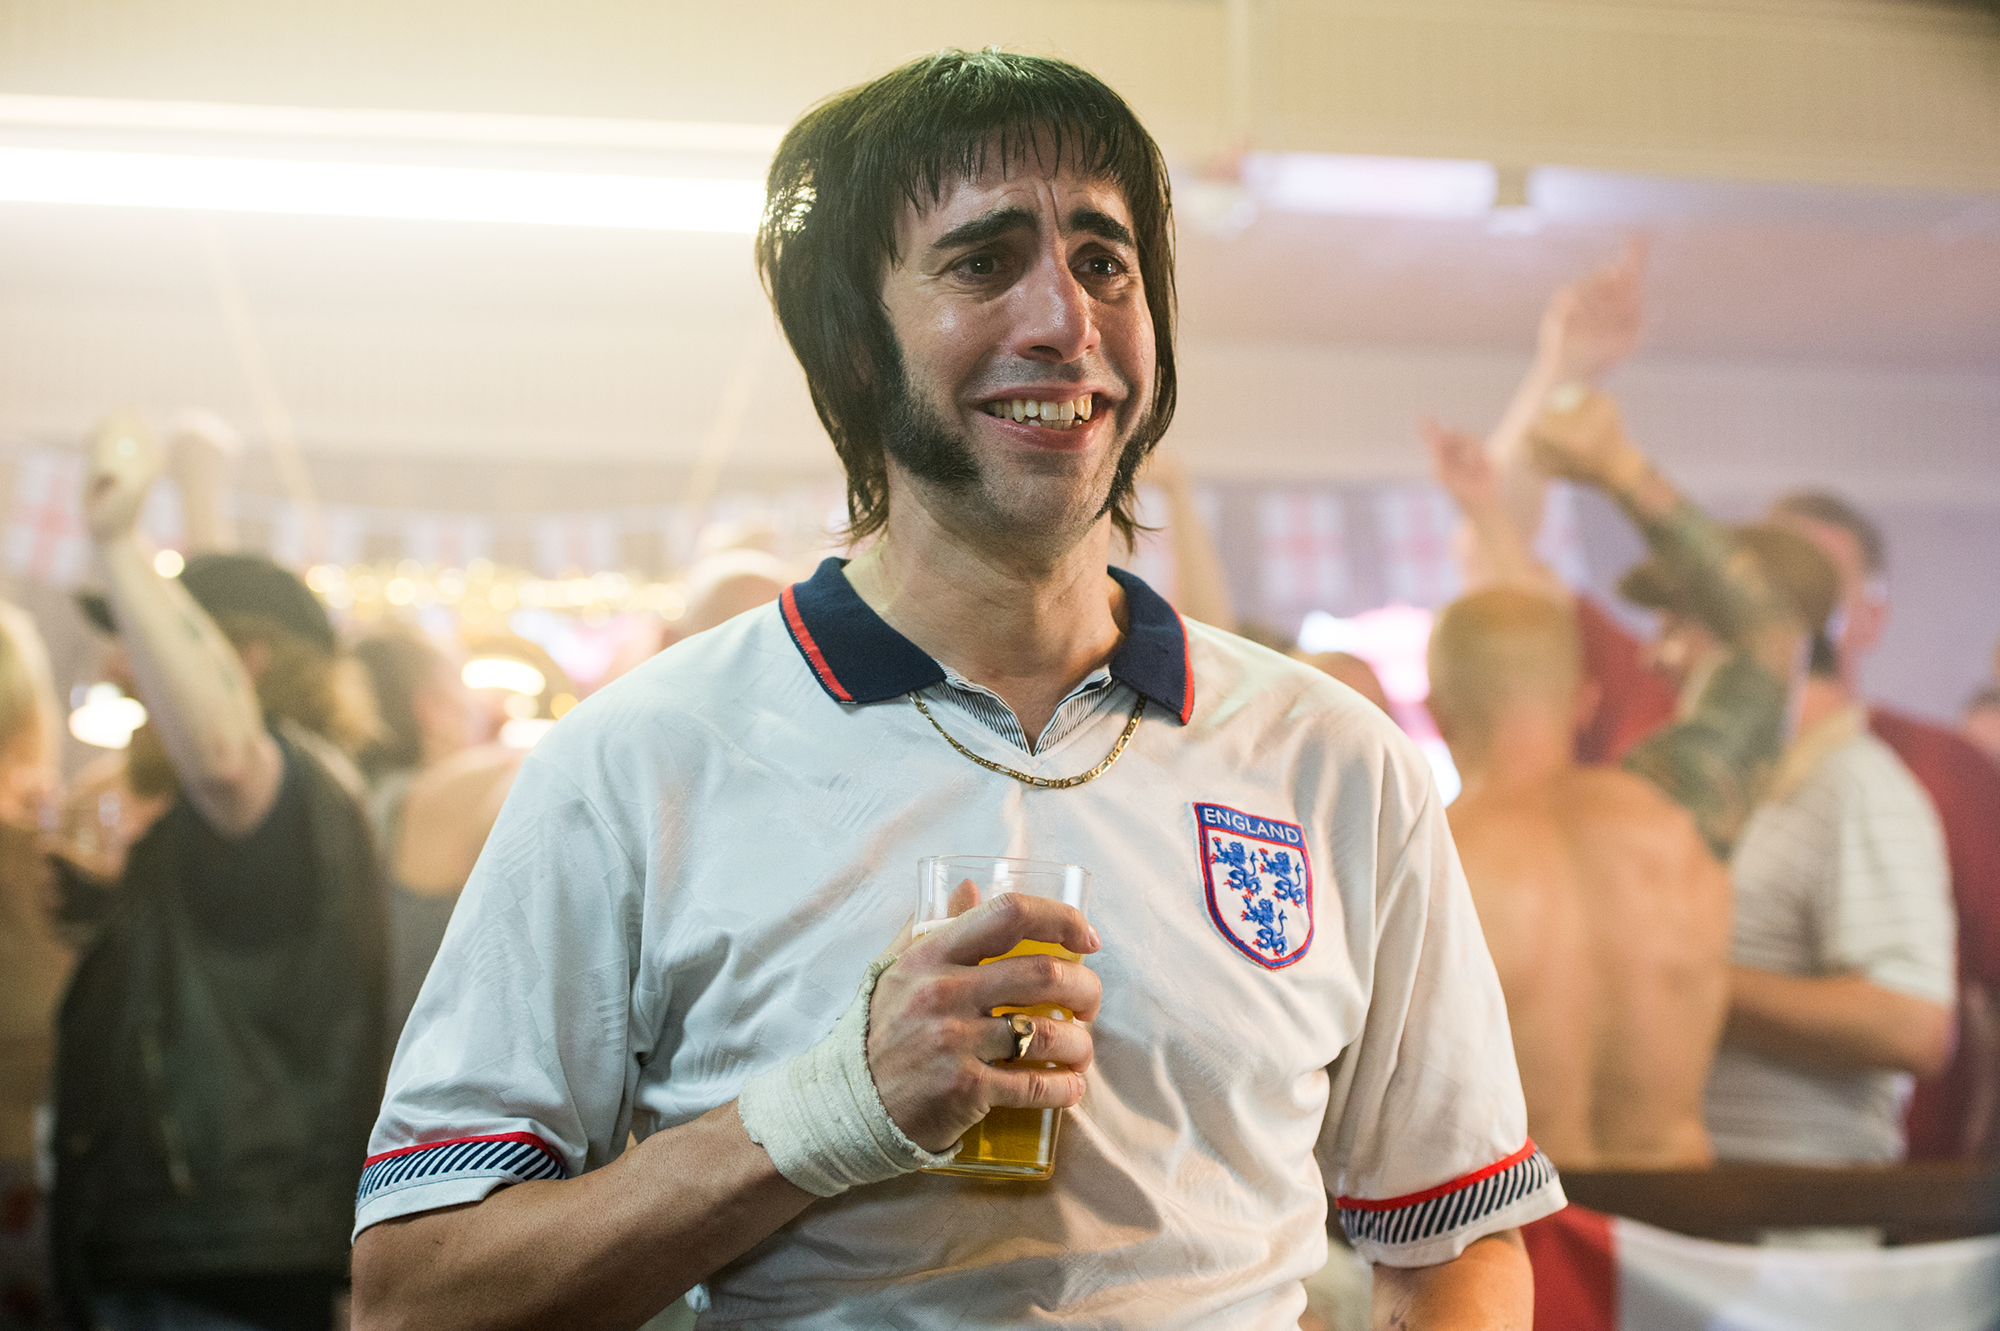 Sacha Baron Cohen in The Brothers Grimsby.